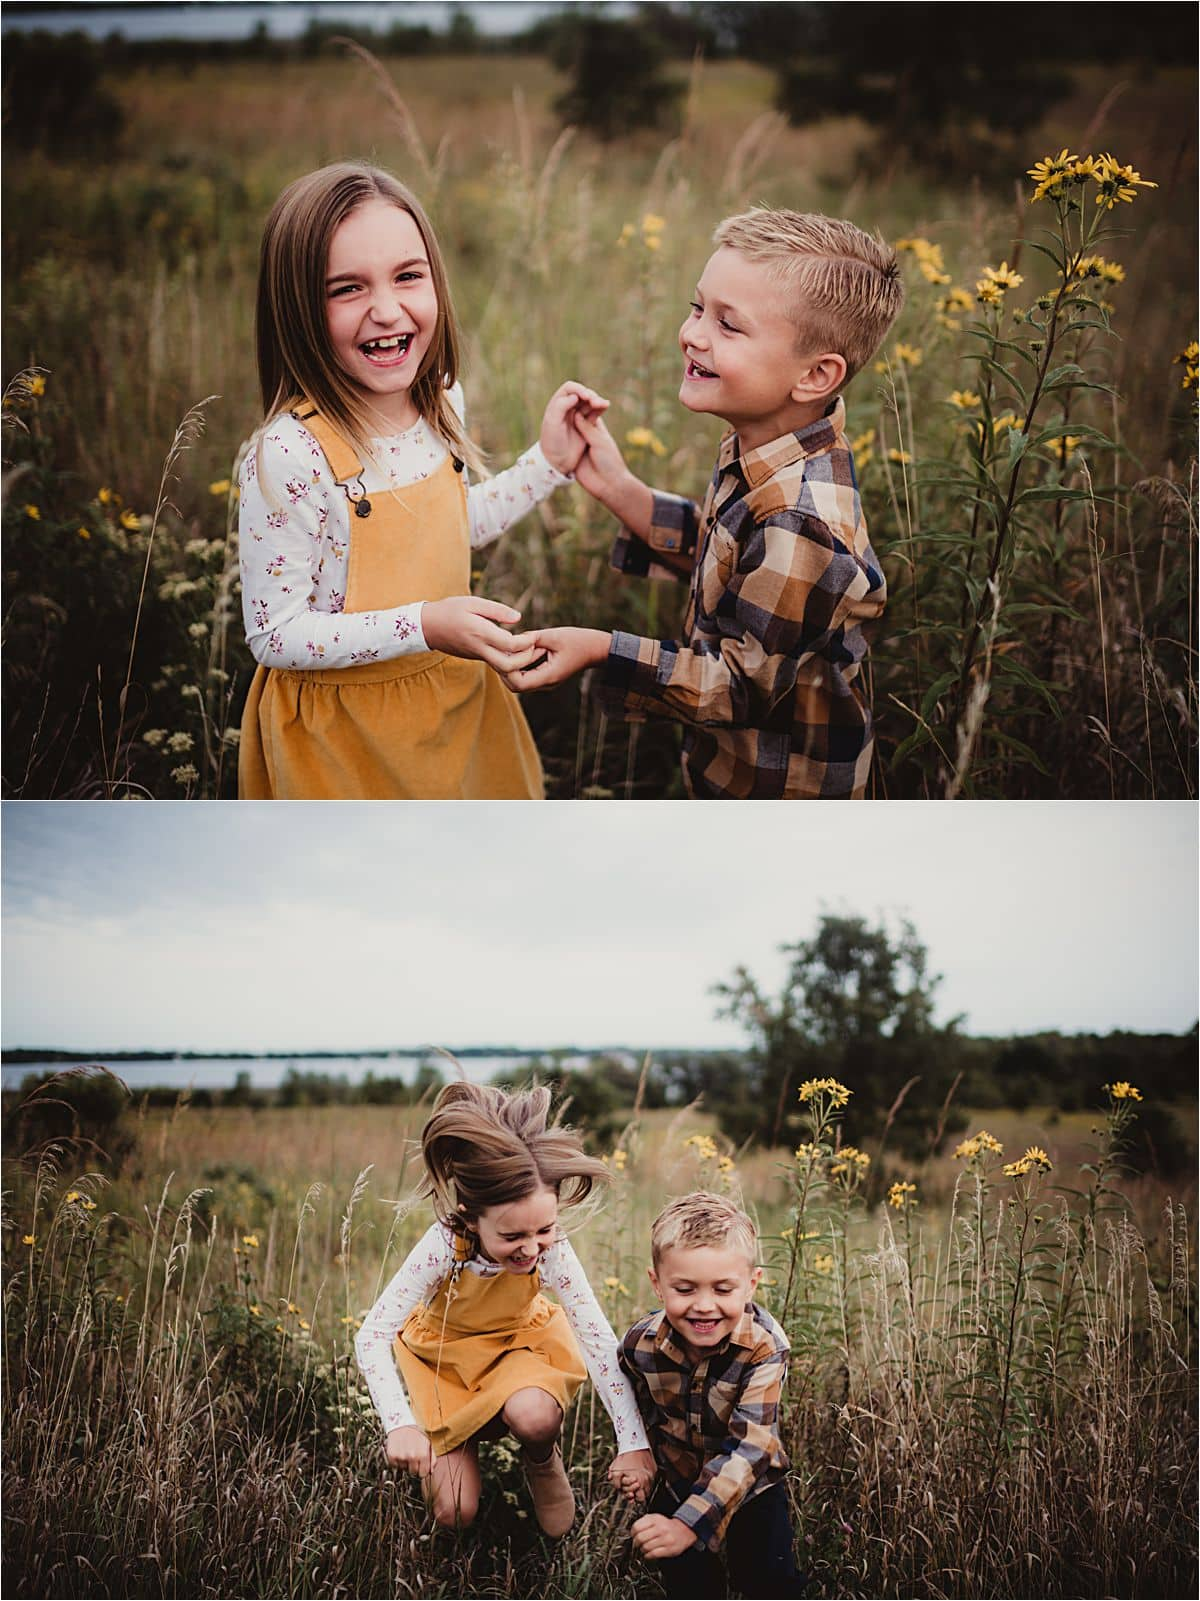 Siblings Holding Hands in Field